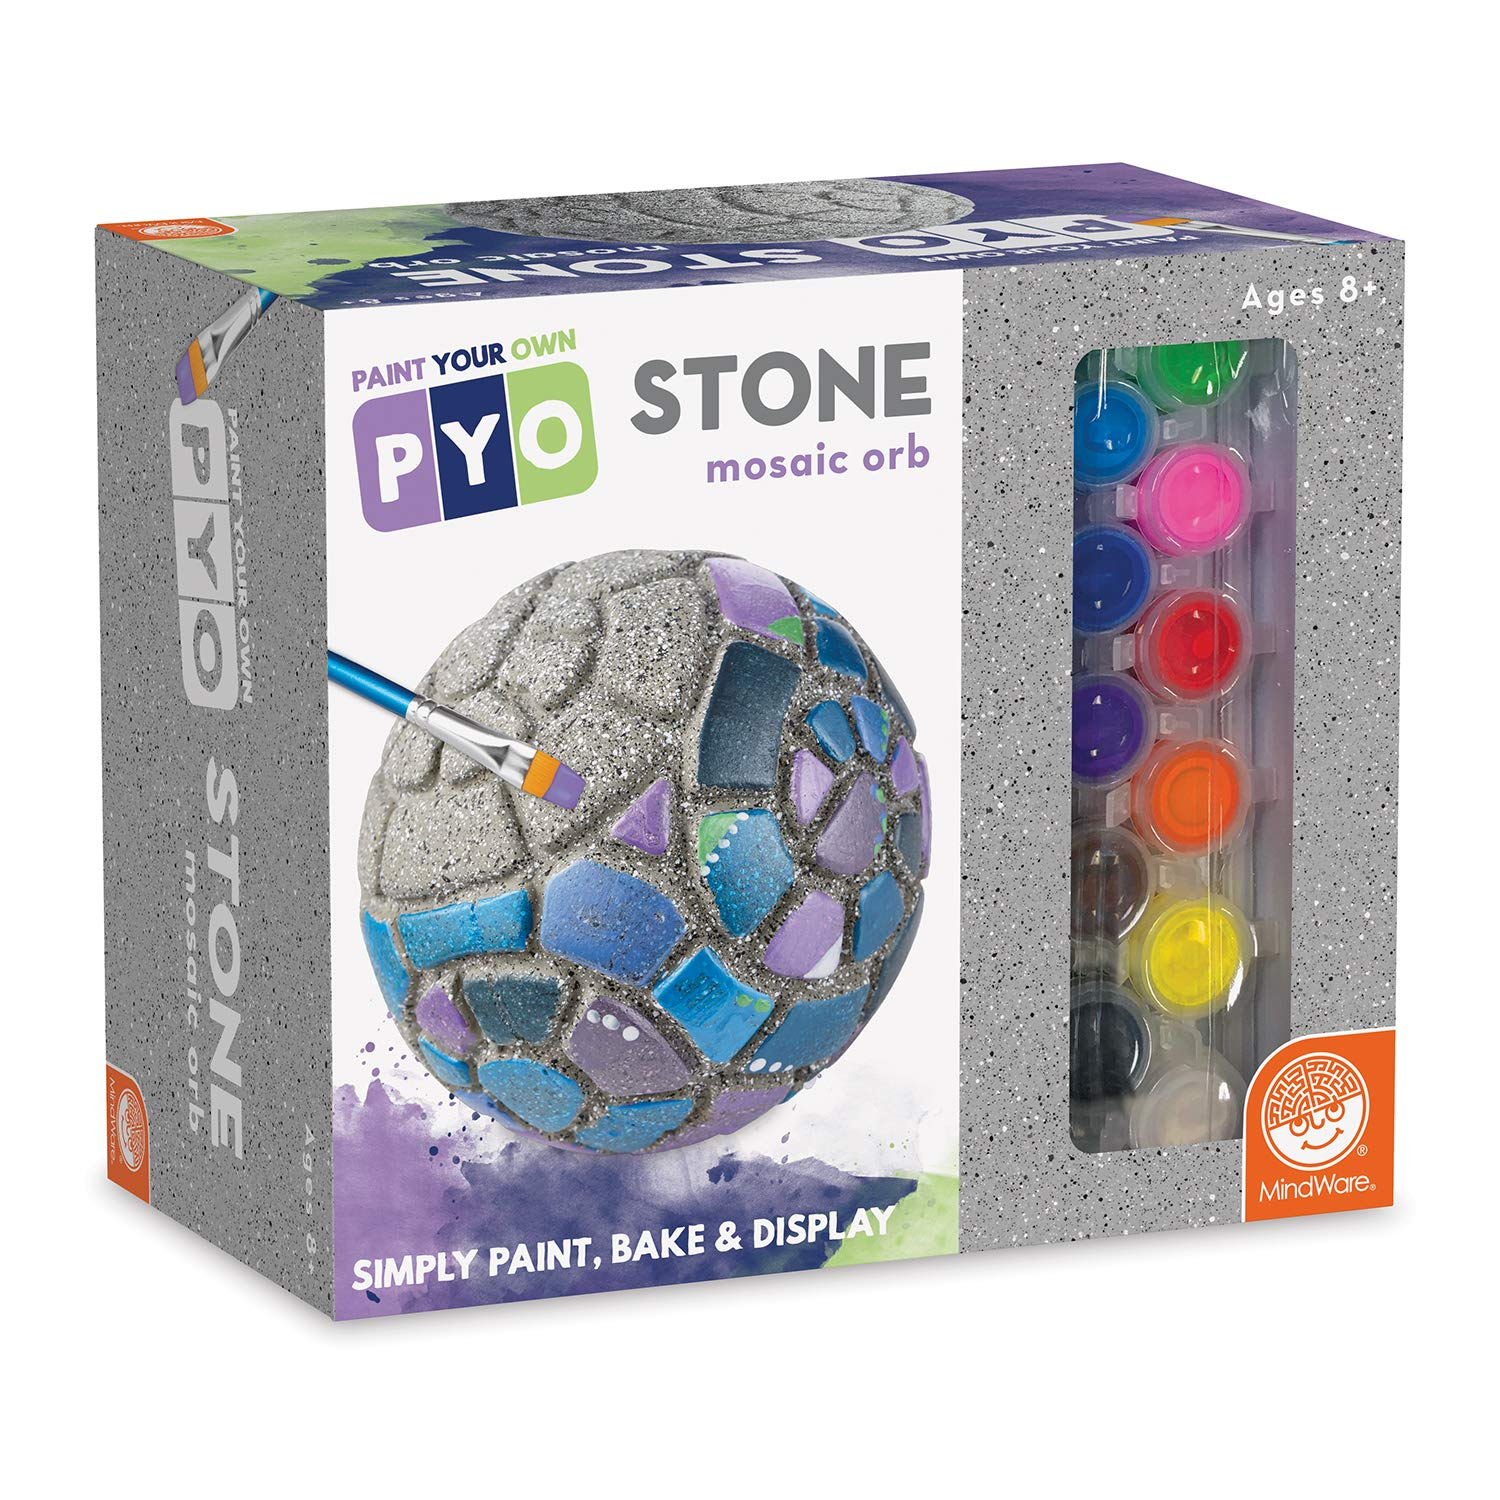 MindWare Paint Your Own Stone: Mosaic Orb